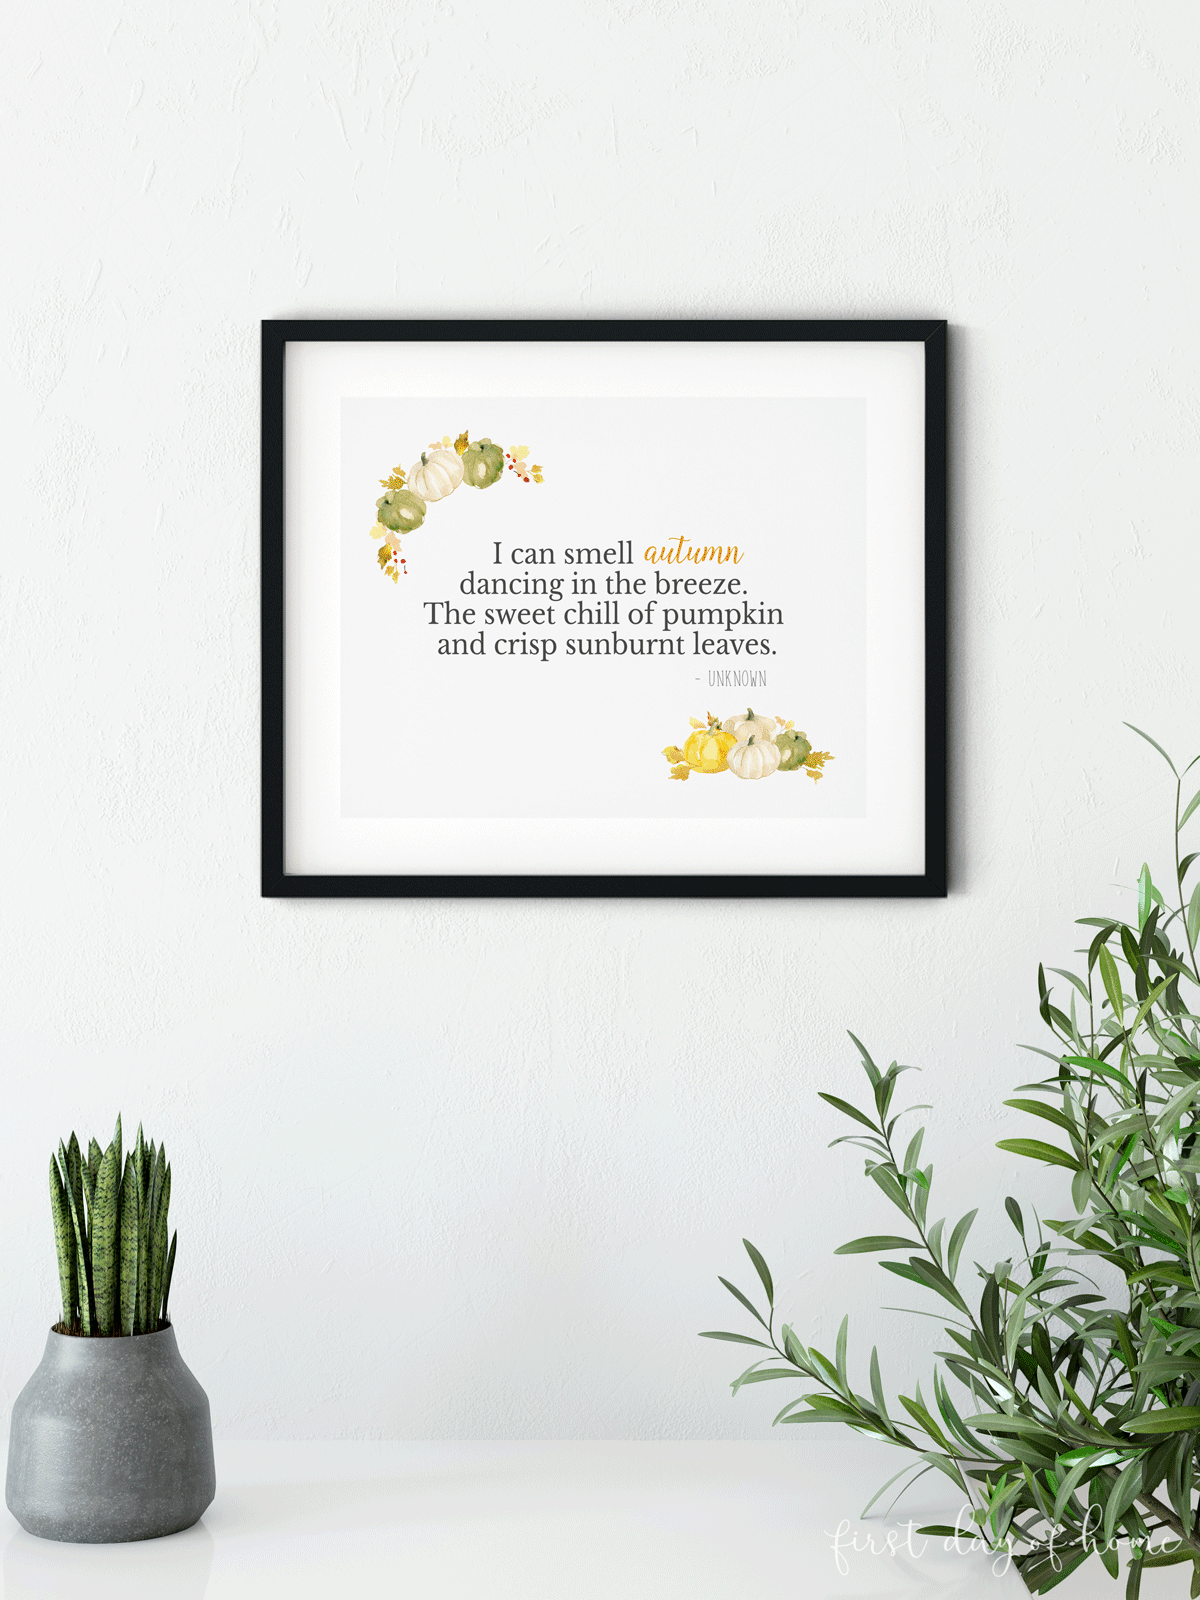 Printable fall decorations to hang on the wall with autumn poem